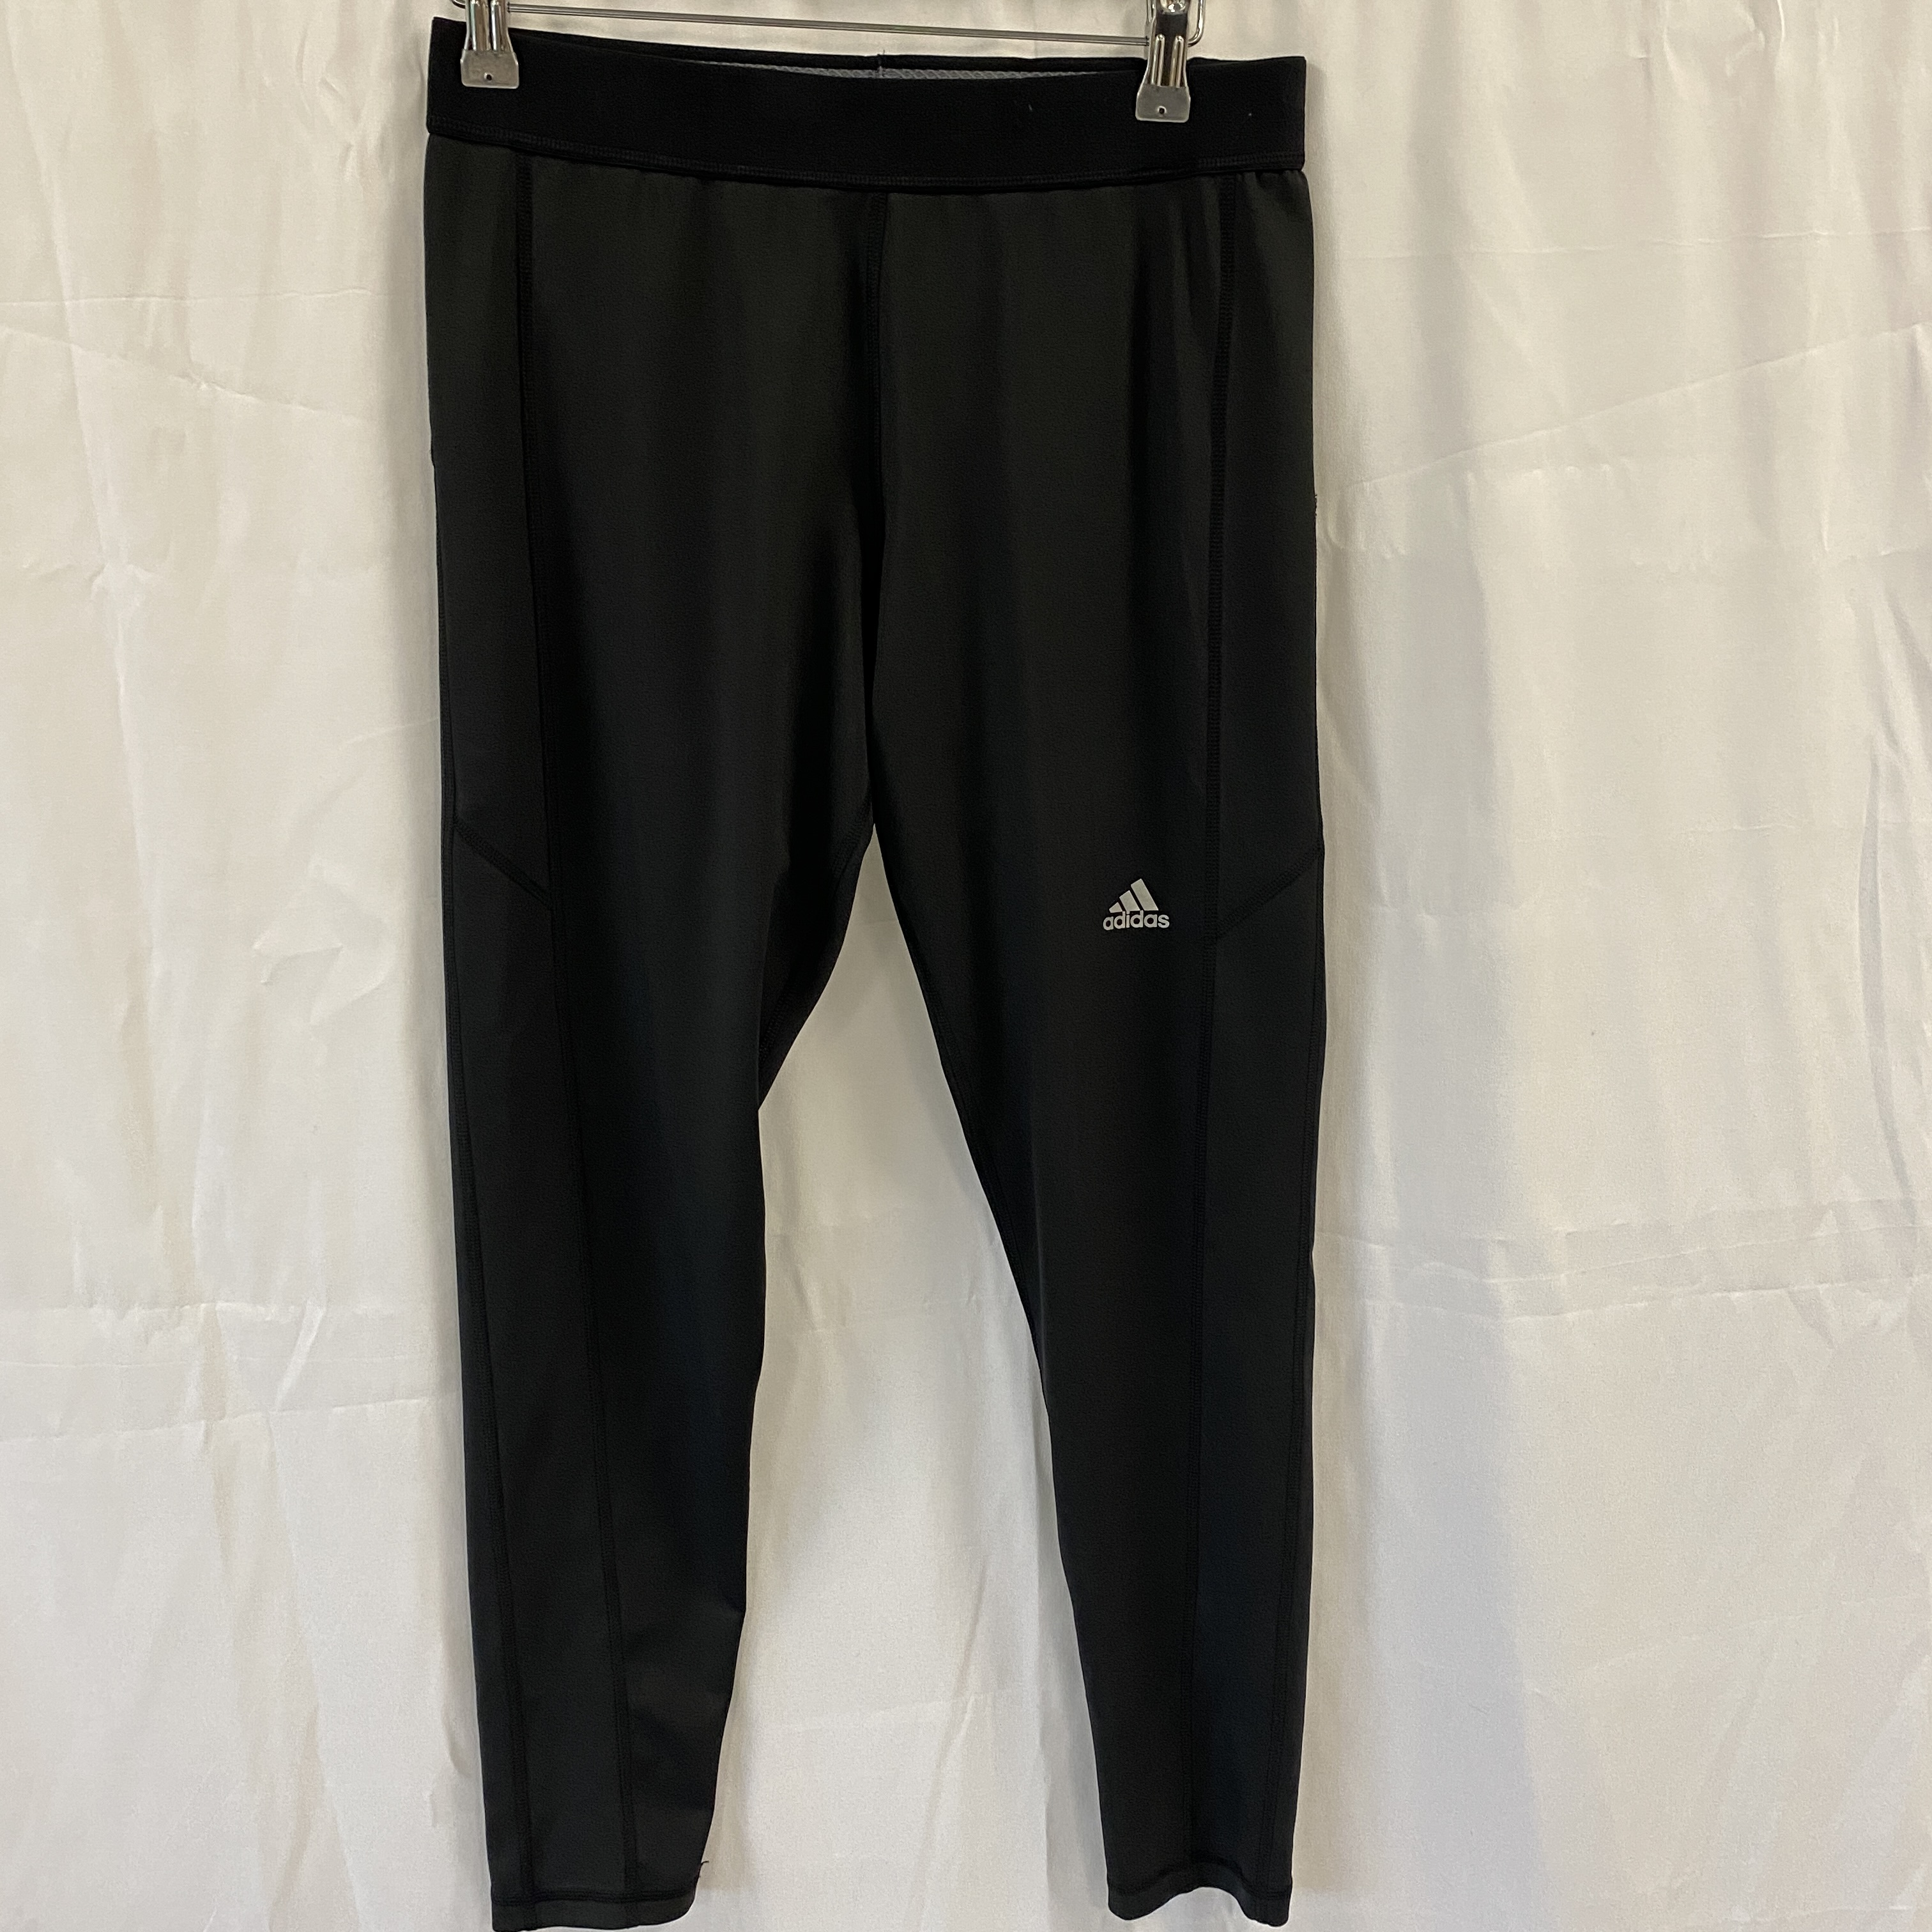 Adidas Techfit Running/Yoga Leggings - Size 16-18